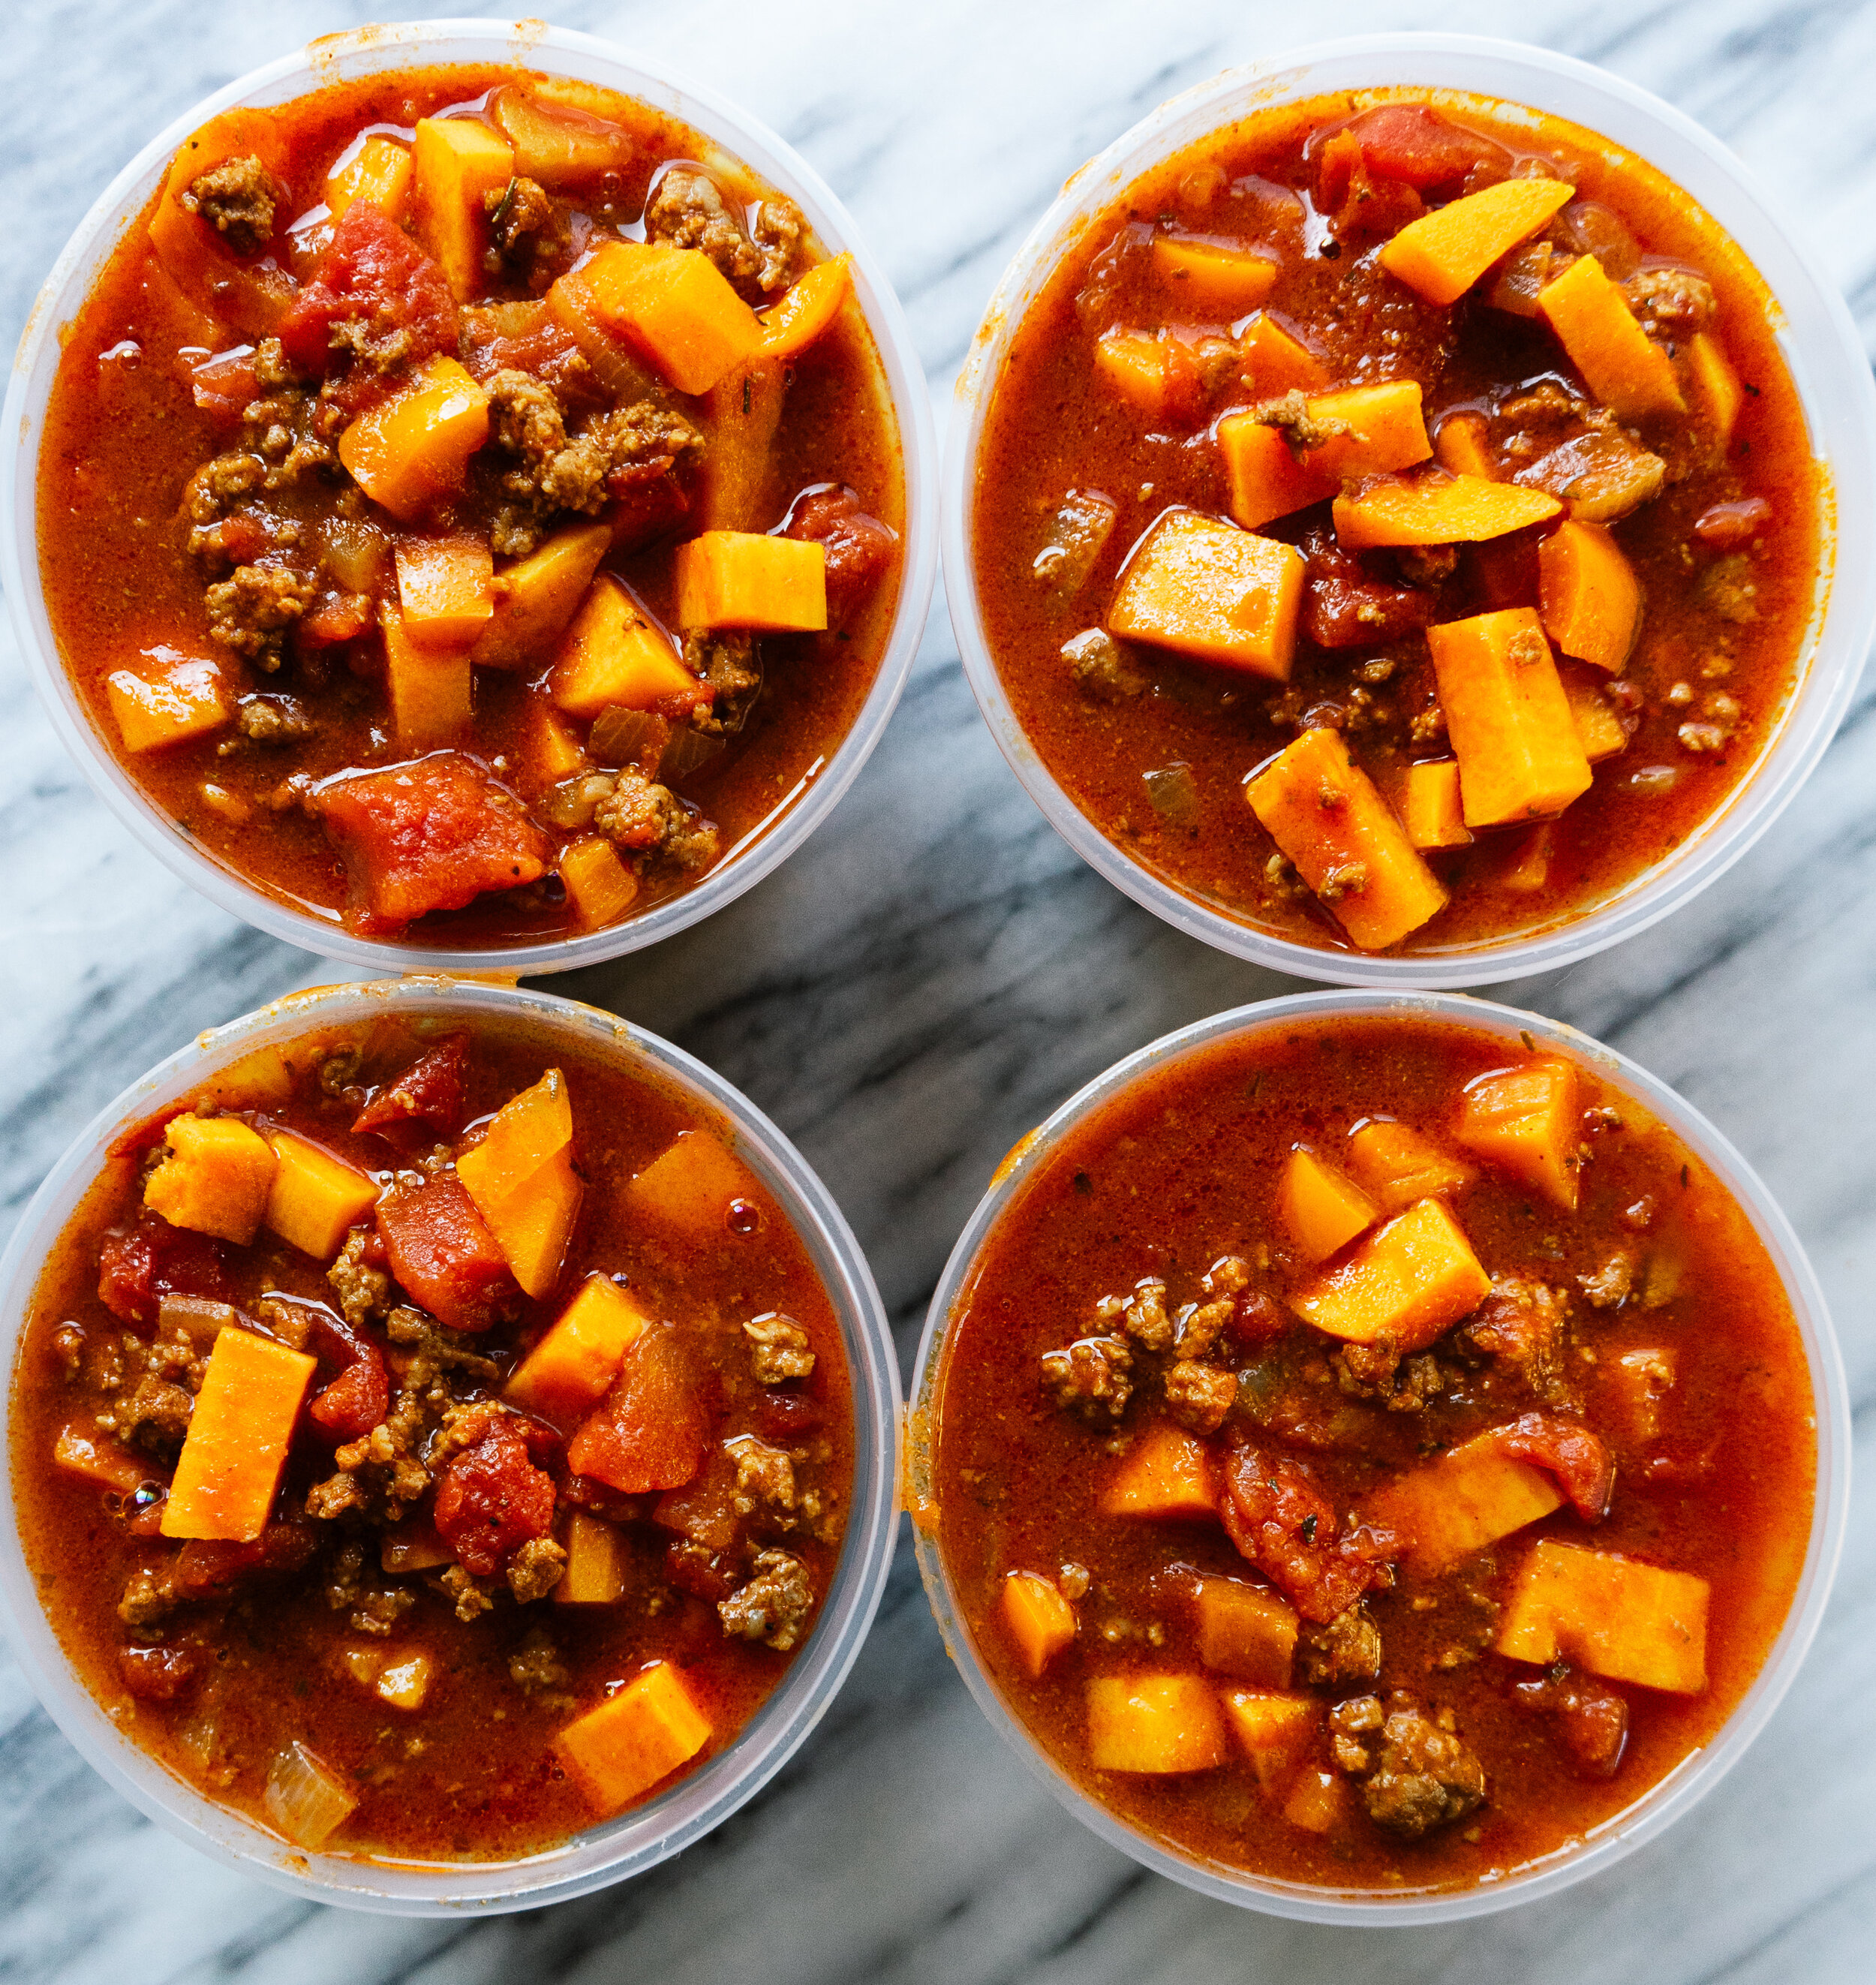 Chili season is my favorite. Get cozy with a bowl of this sweet potato paleo chili. This can be a stovetop chili or an instant pot chili recipe. This comforting and healthy paleo chili is also Whole30 compliant.